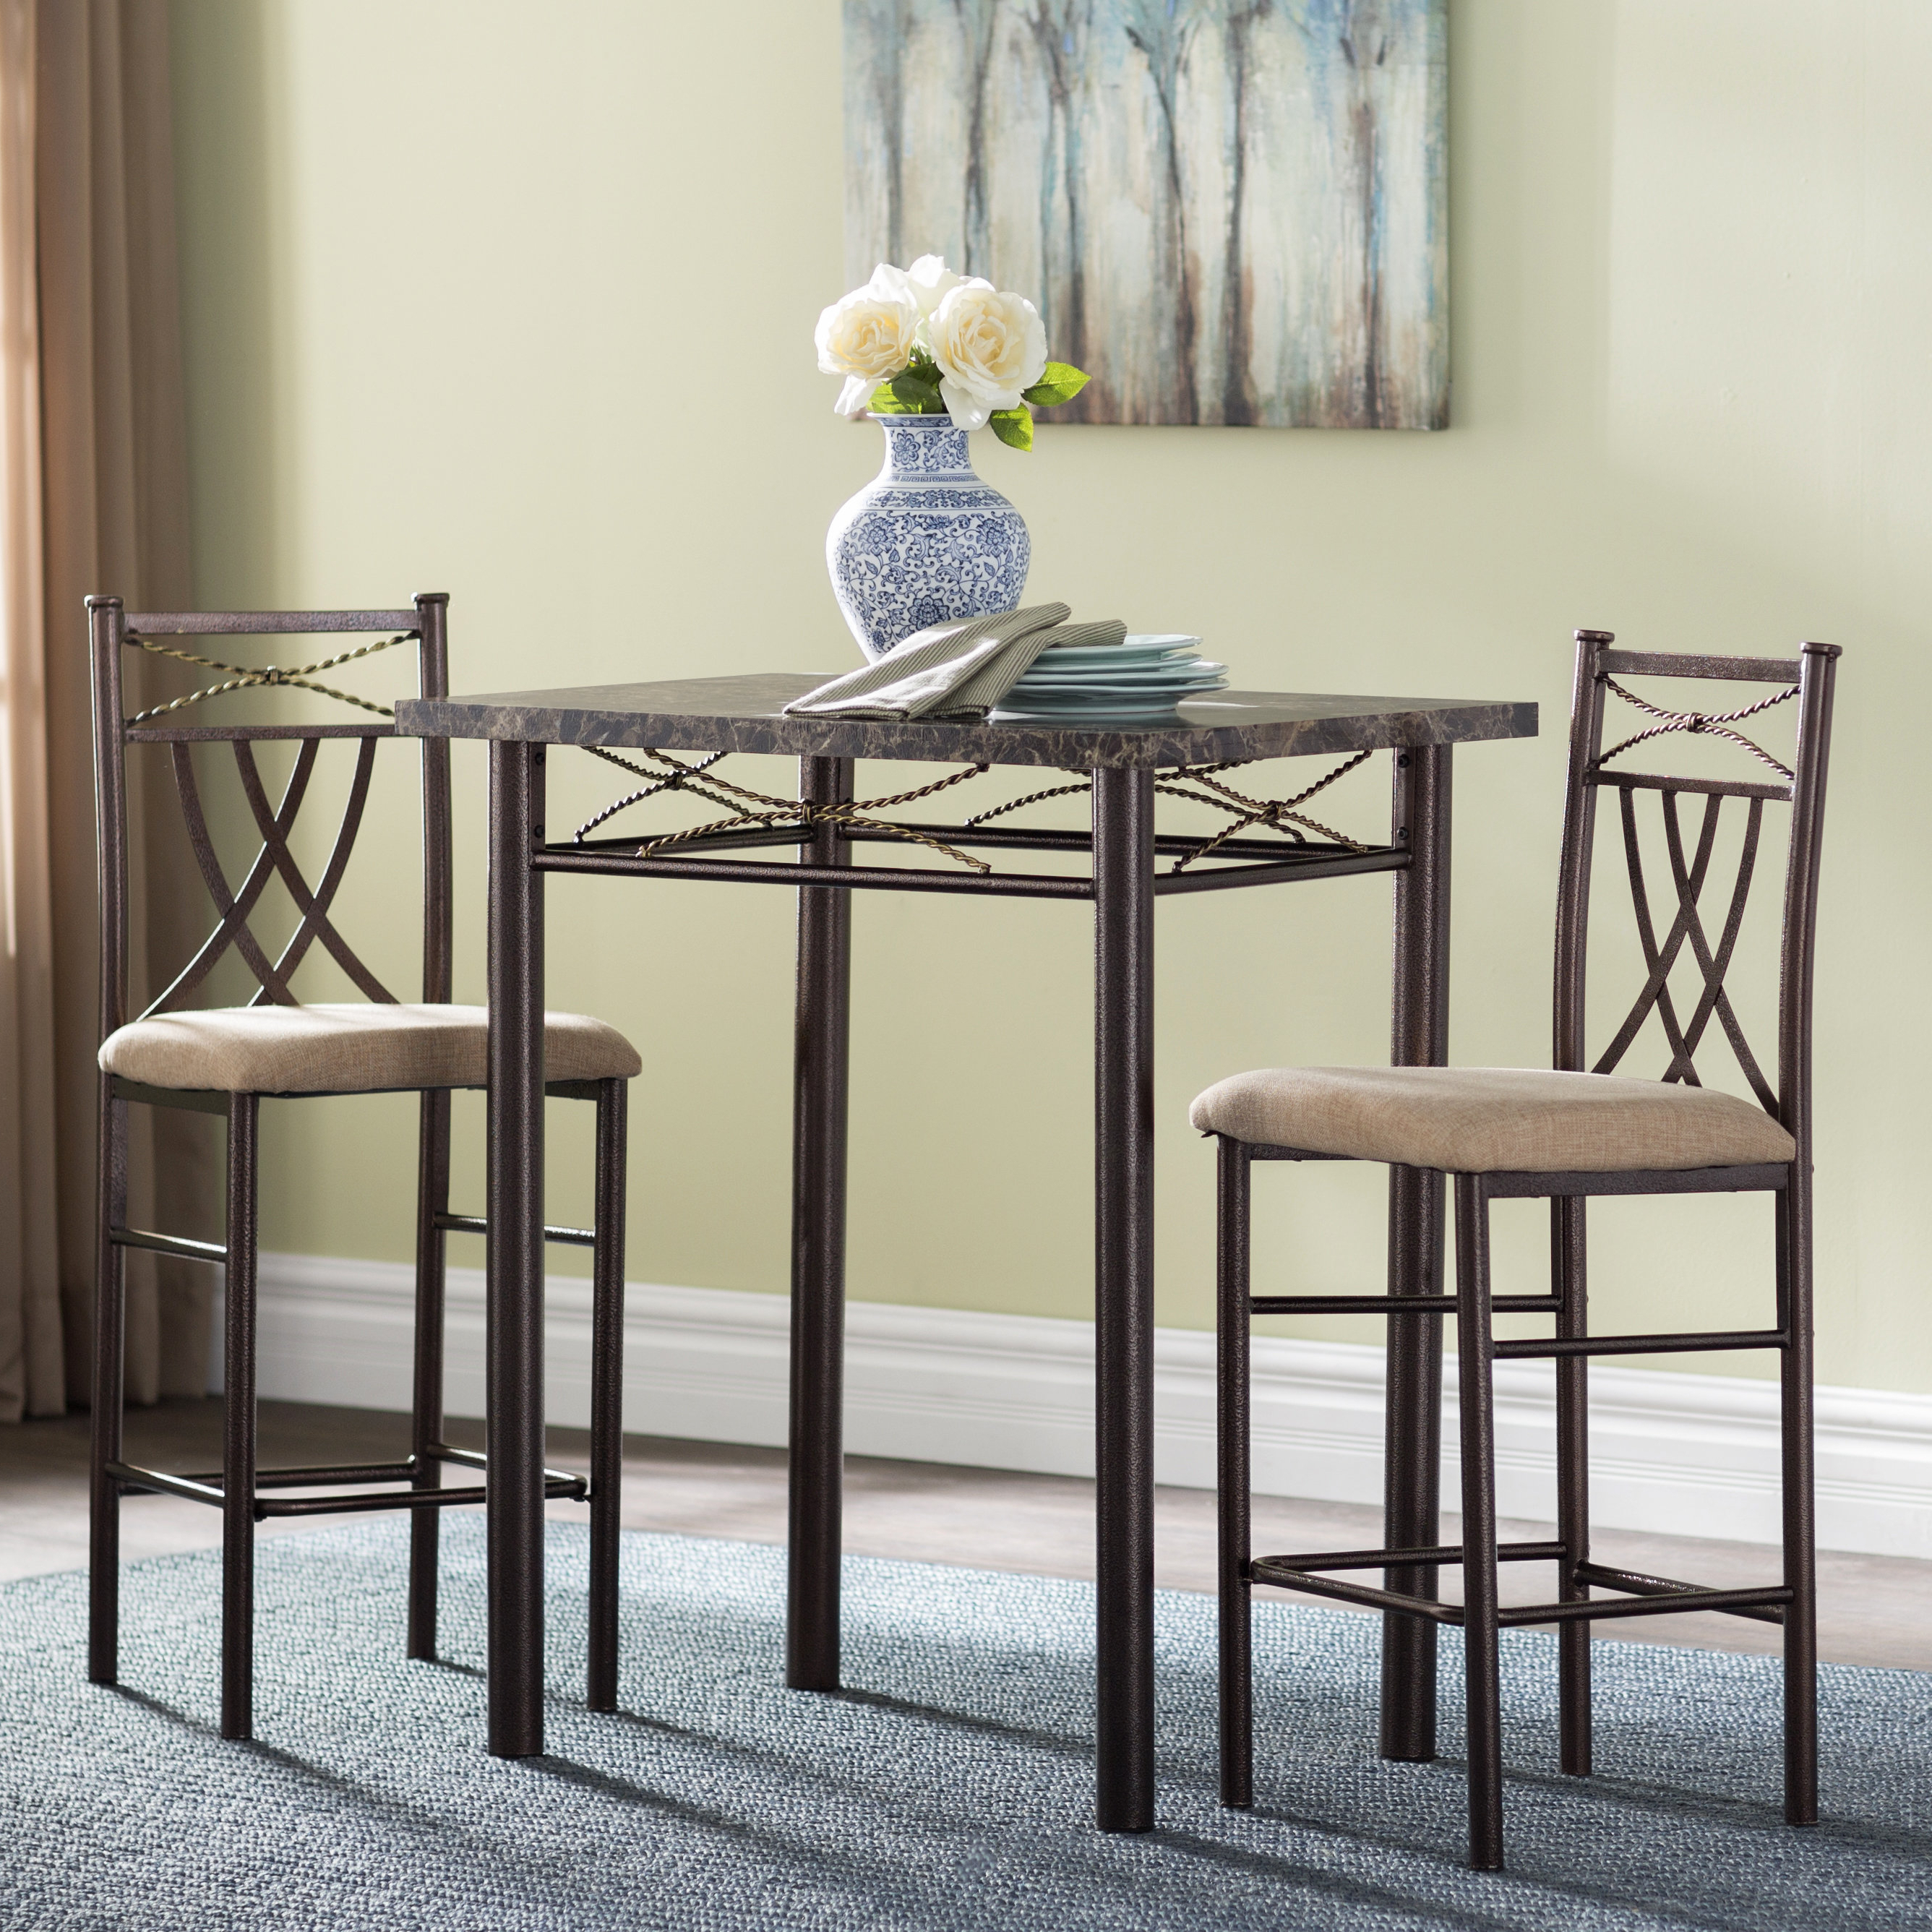 2017 Cincinnati 3 Piece Dining Set Throughout Cincinnati 3 Piece Dining Sets (Gallery 1 of 20)